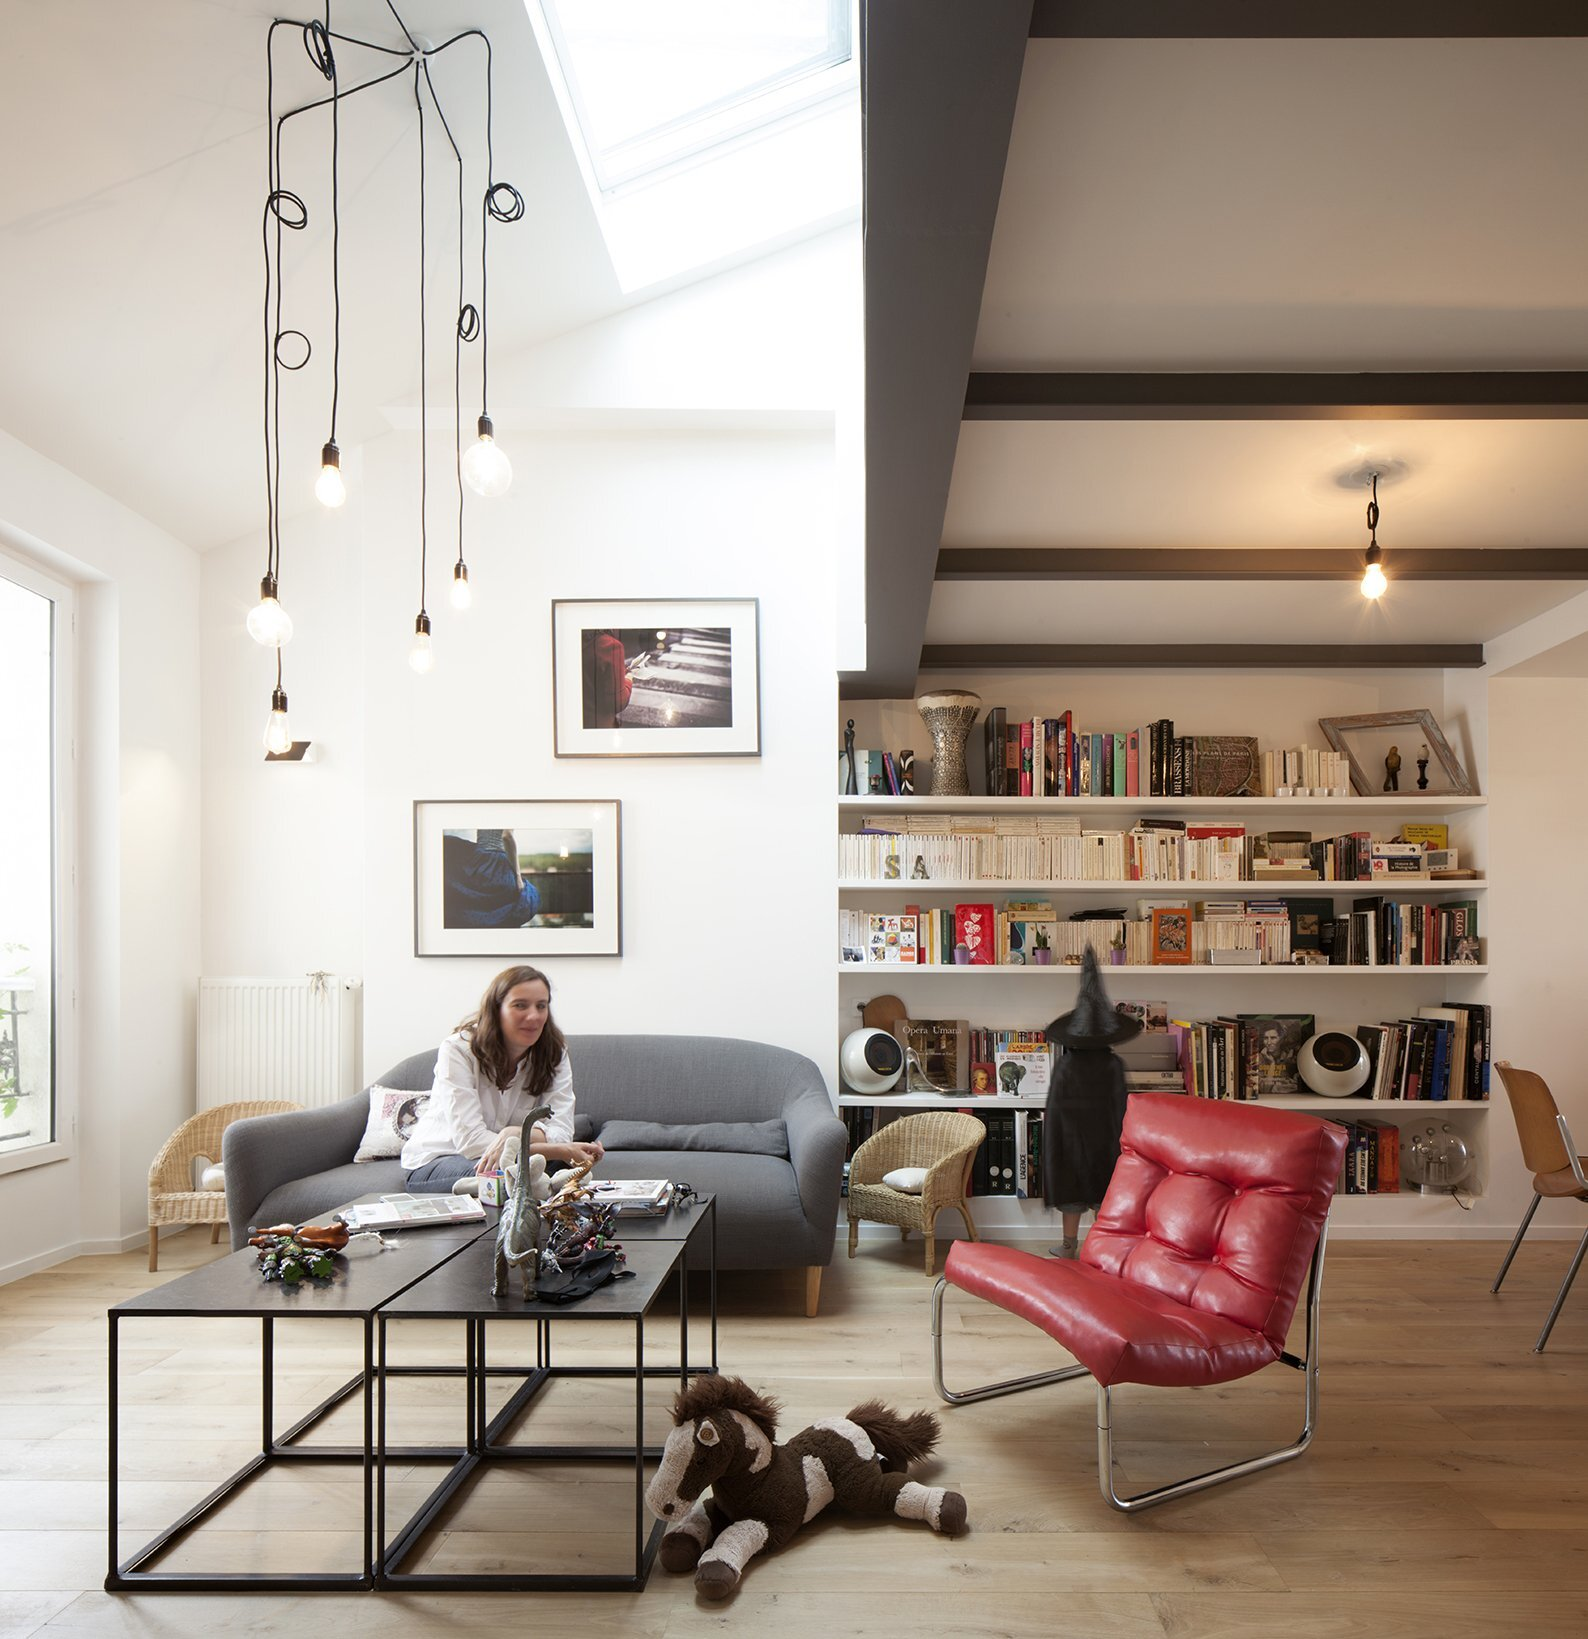 Duplex in Saint-Mande - CAIROS Architecture et Paysage - France - Living Room - Humble Homes